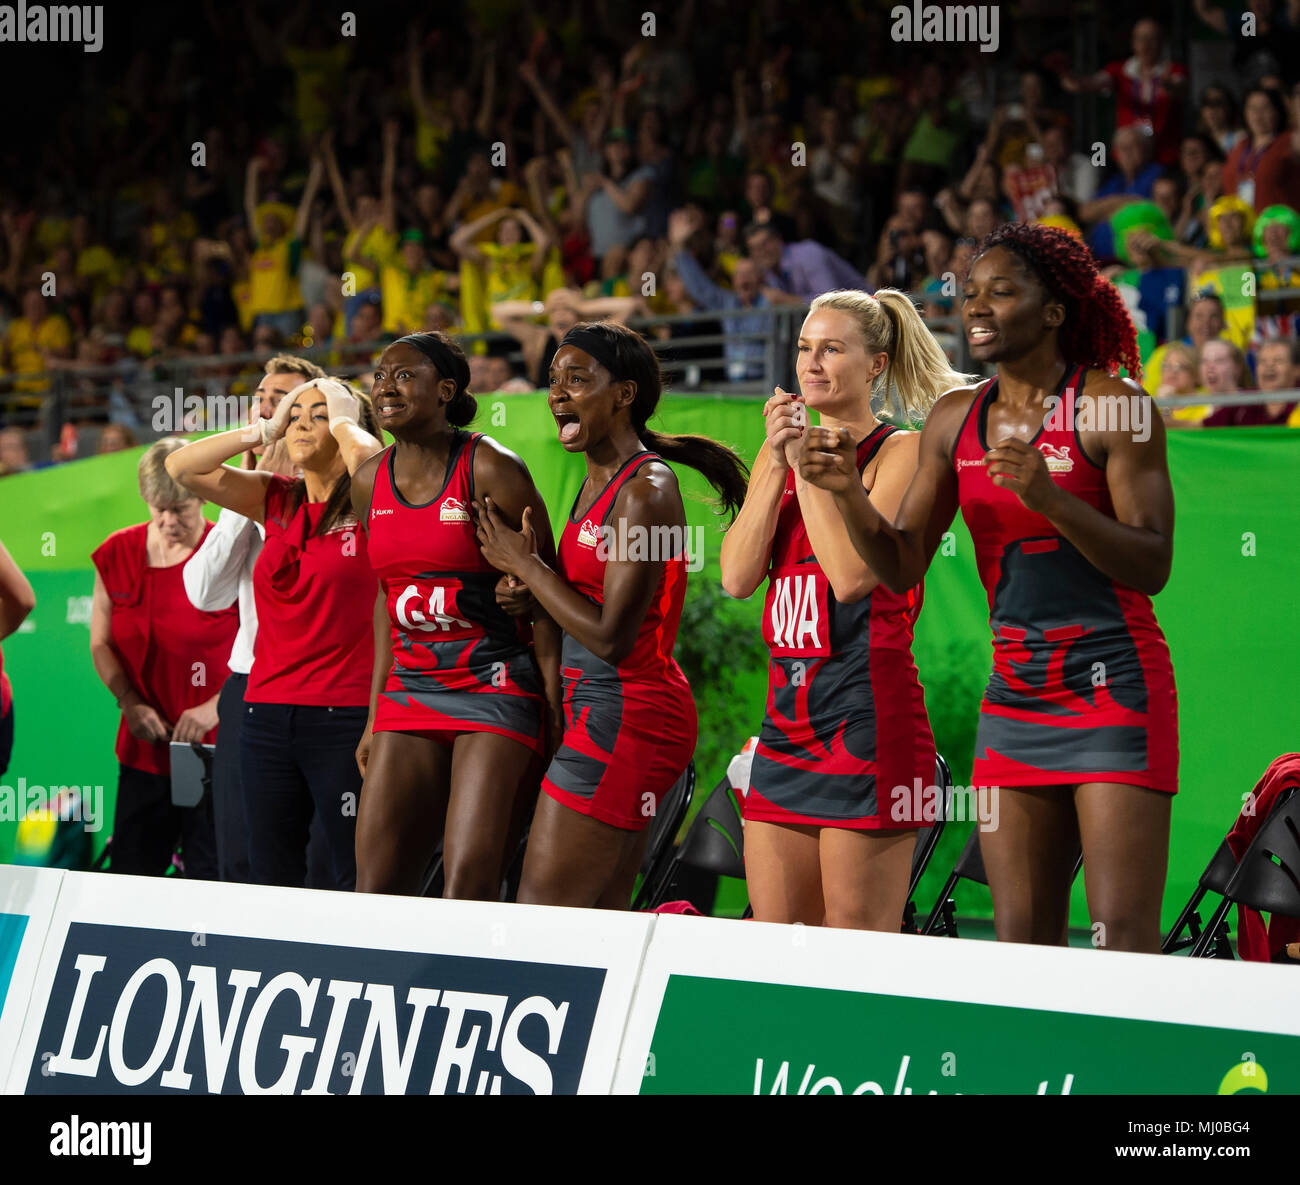 L'Australie v Angleterre Netball Médaille d Match-Commonwealth 2018 Jeux Photo Stock